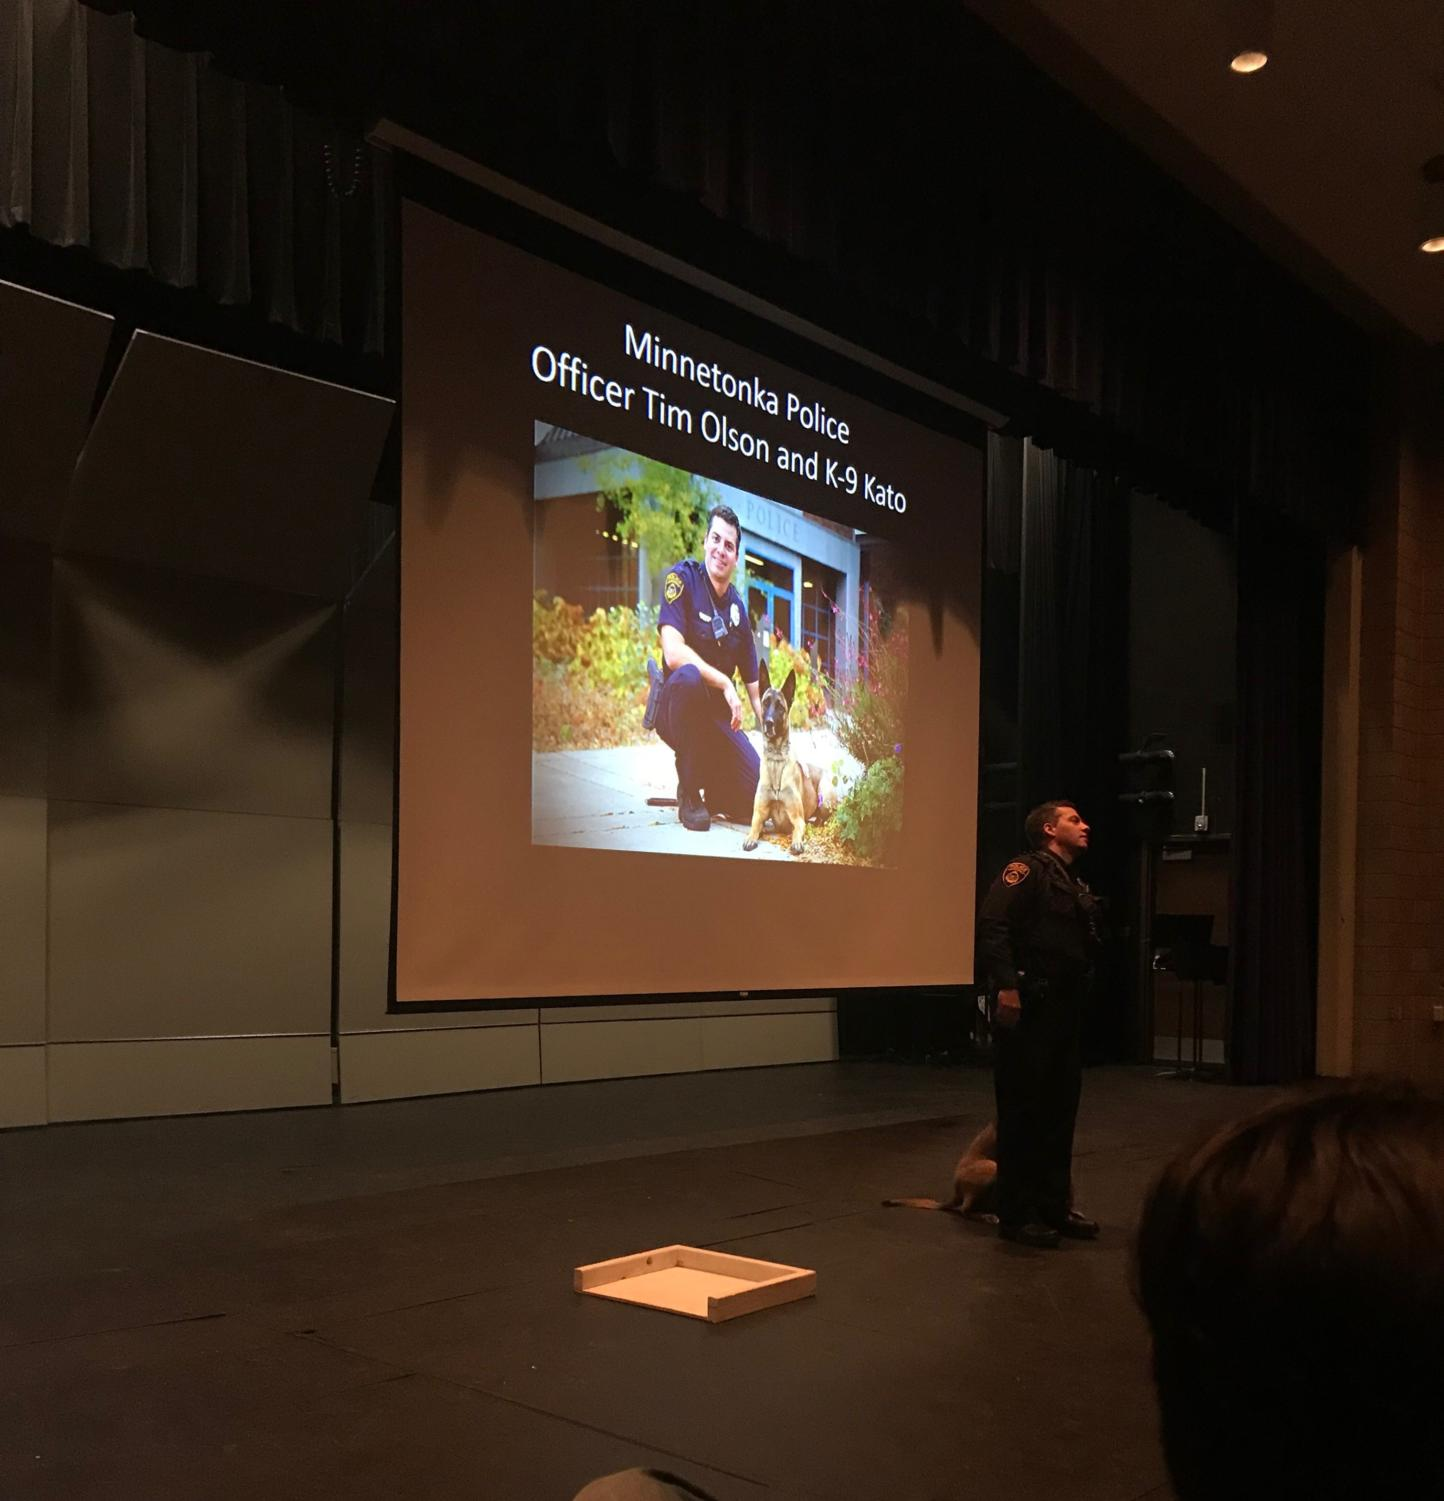 Minnetonka police officer Tim Olson shows Orono psychology students how the department uses operant conditioning to train police dogs